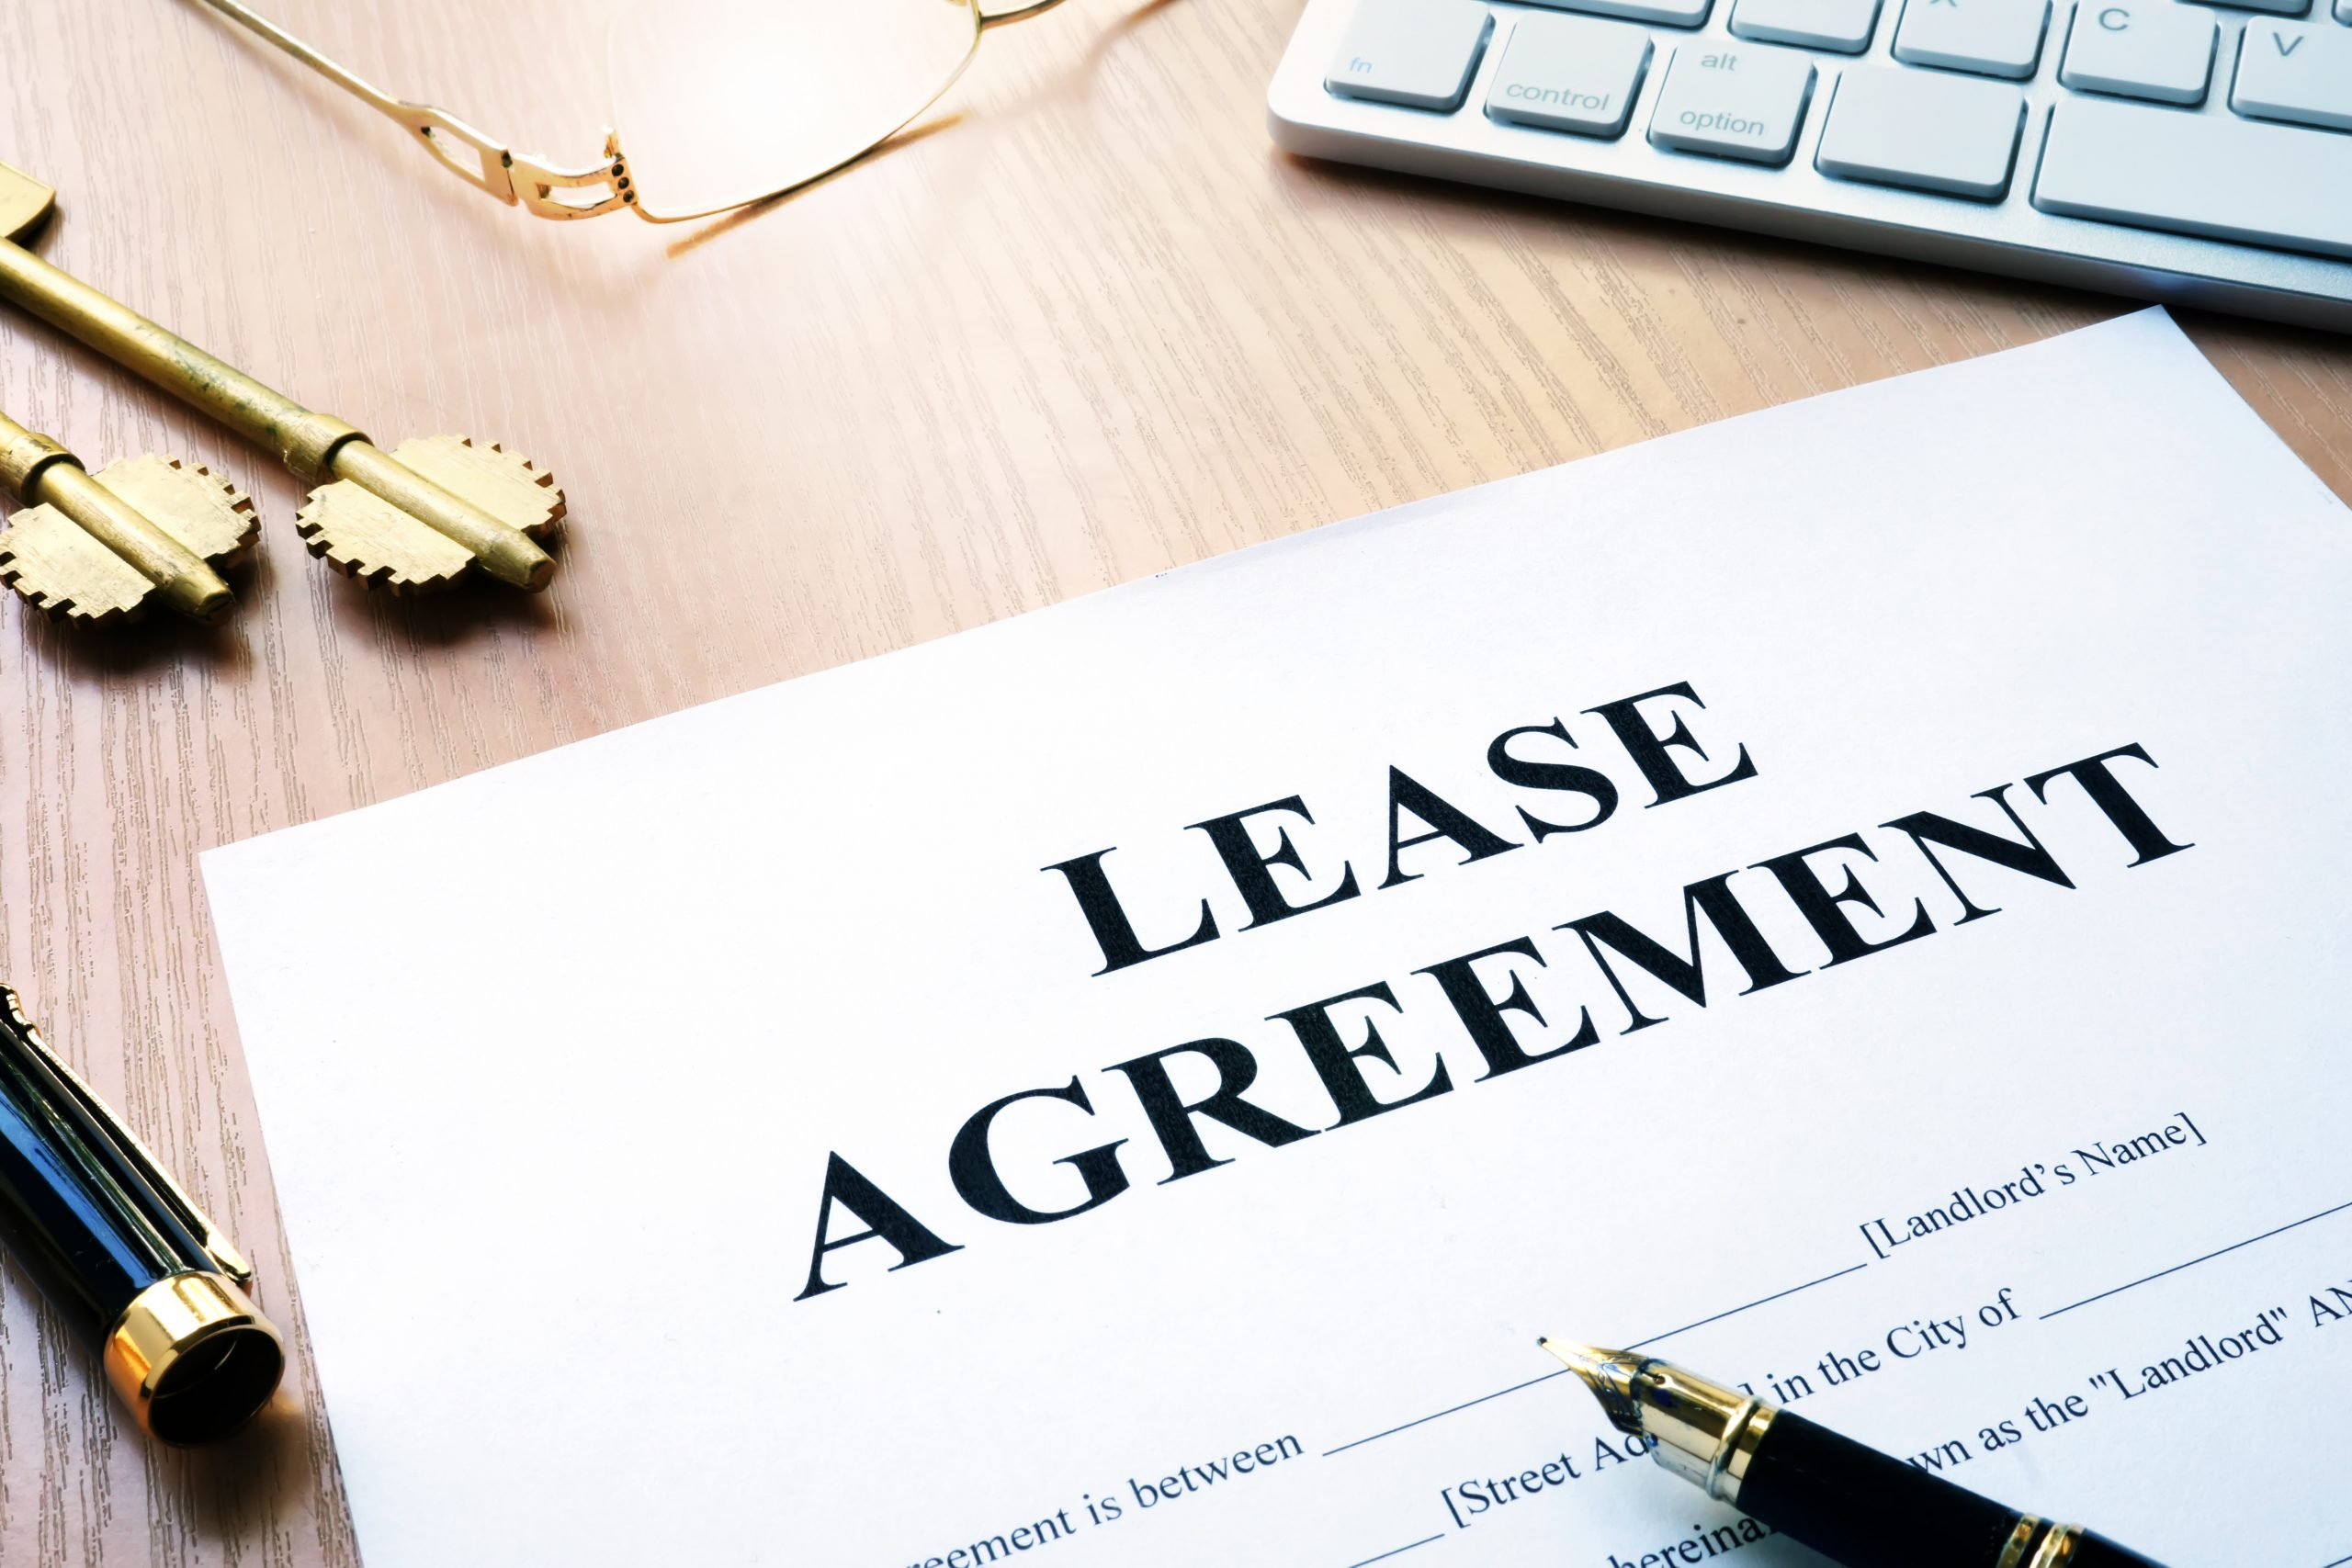 Landlord Asks me to Leave, What Are My Rights